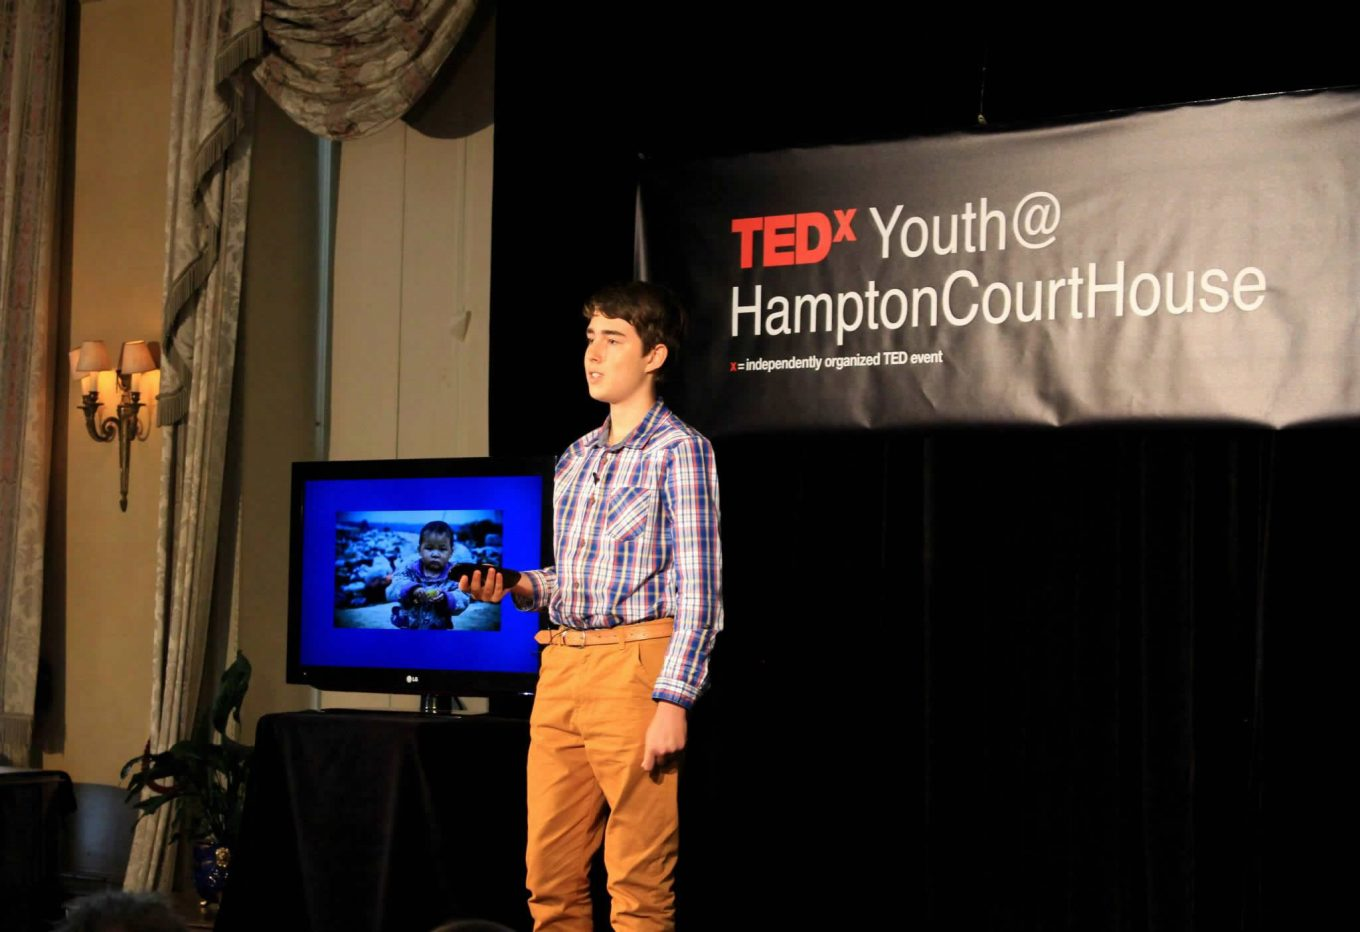 On stage at TEDx Hampton Court House